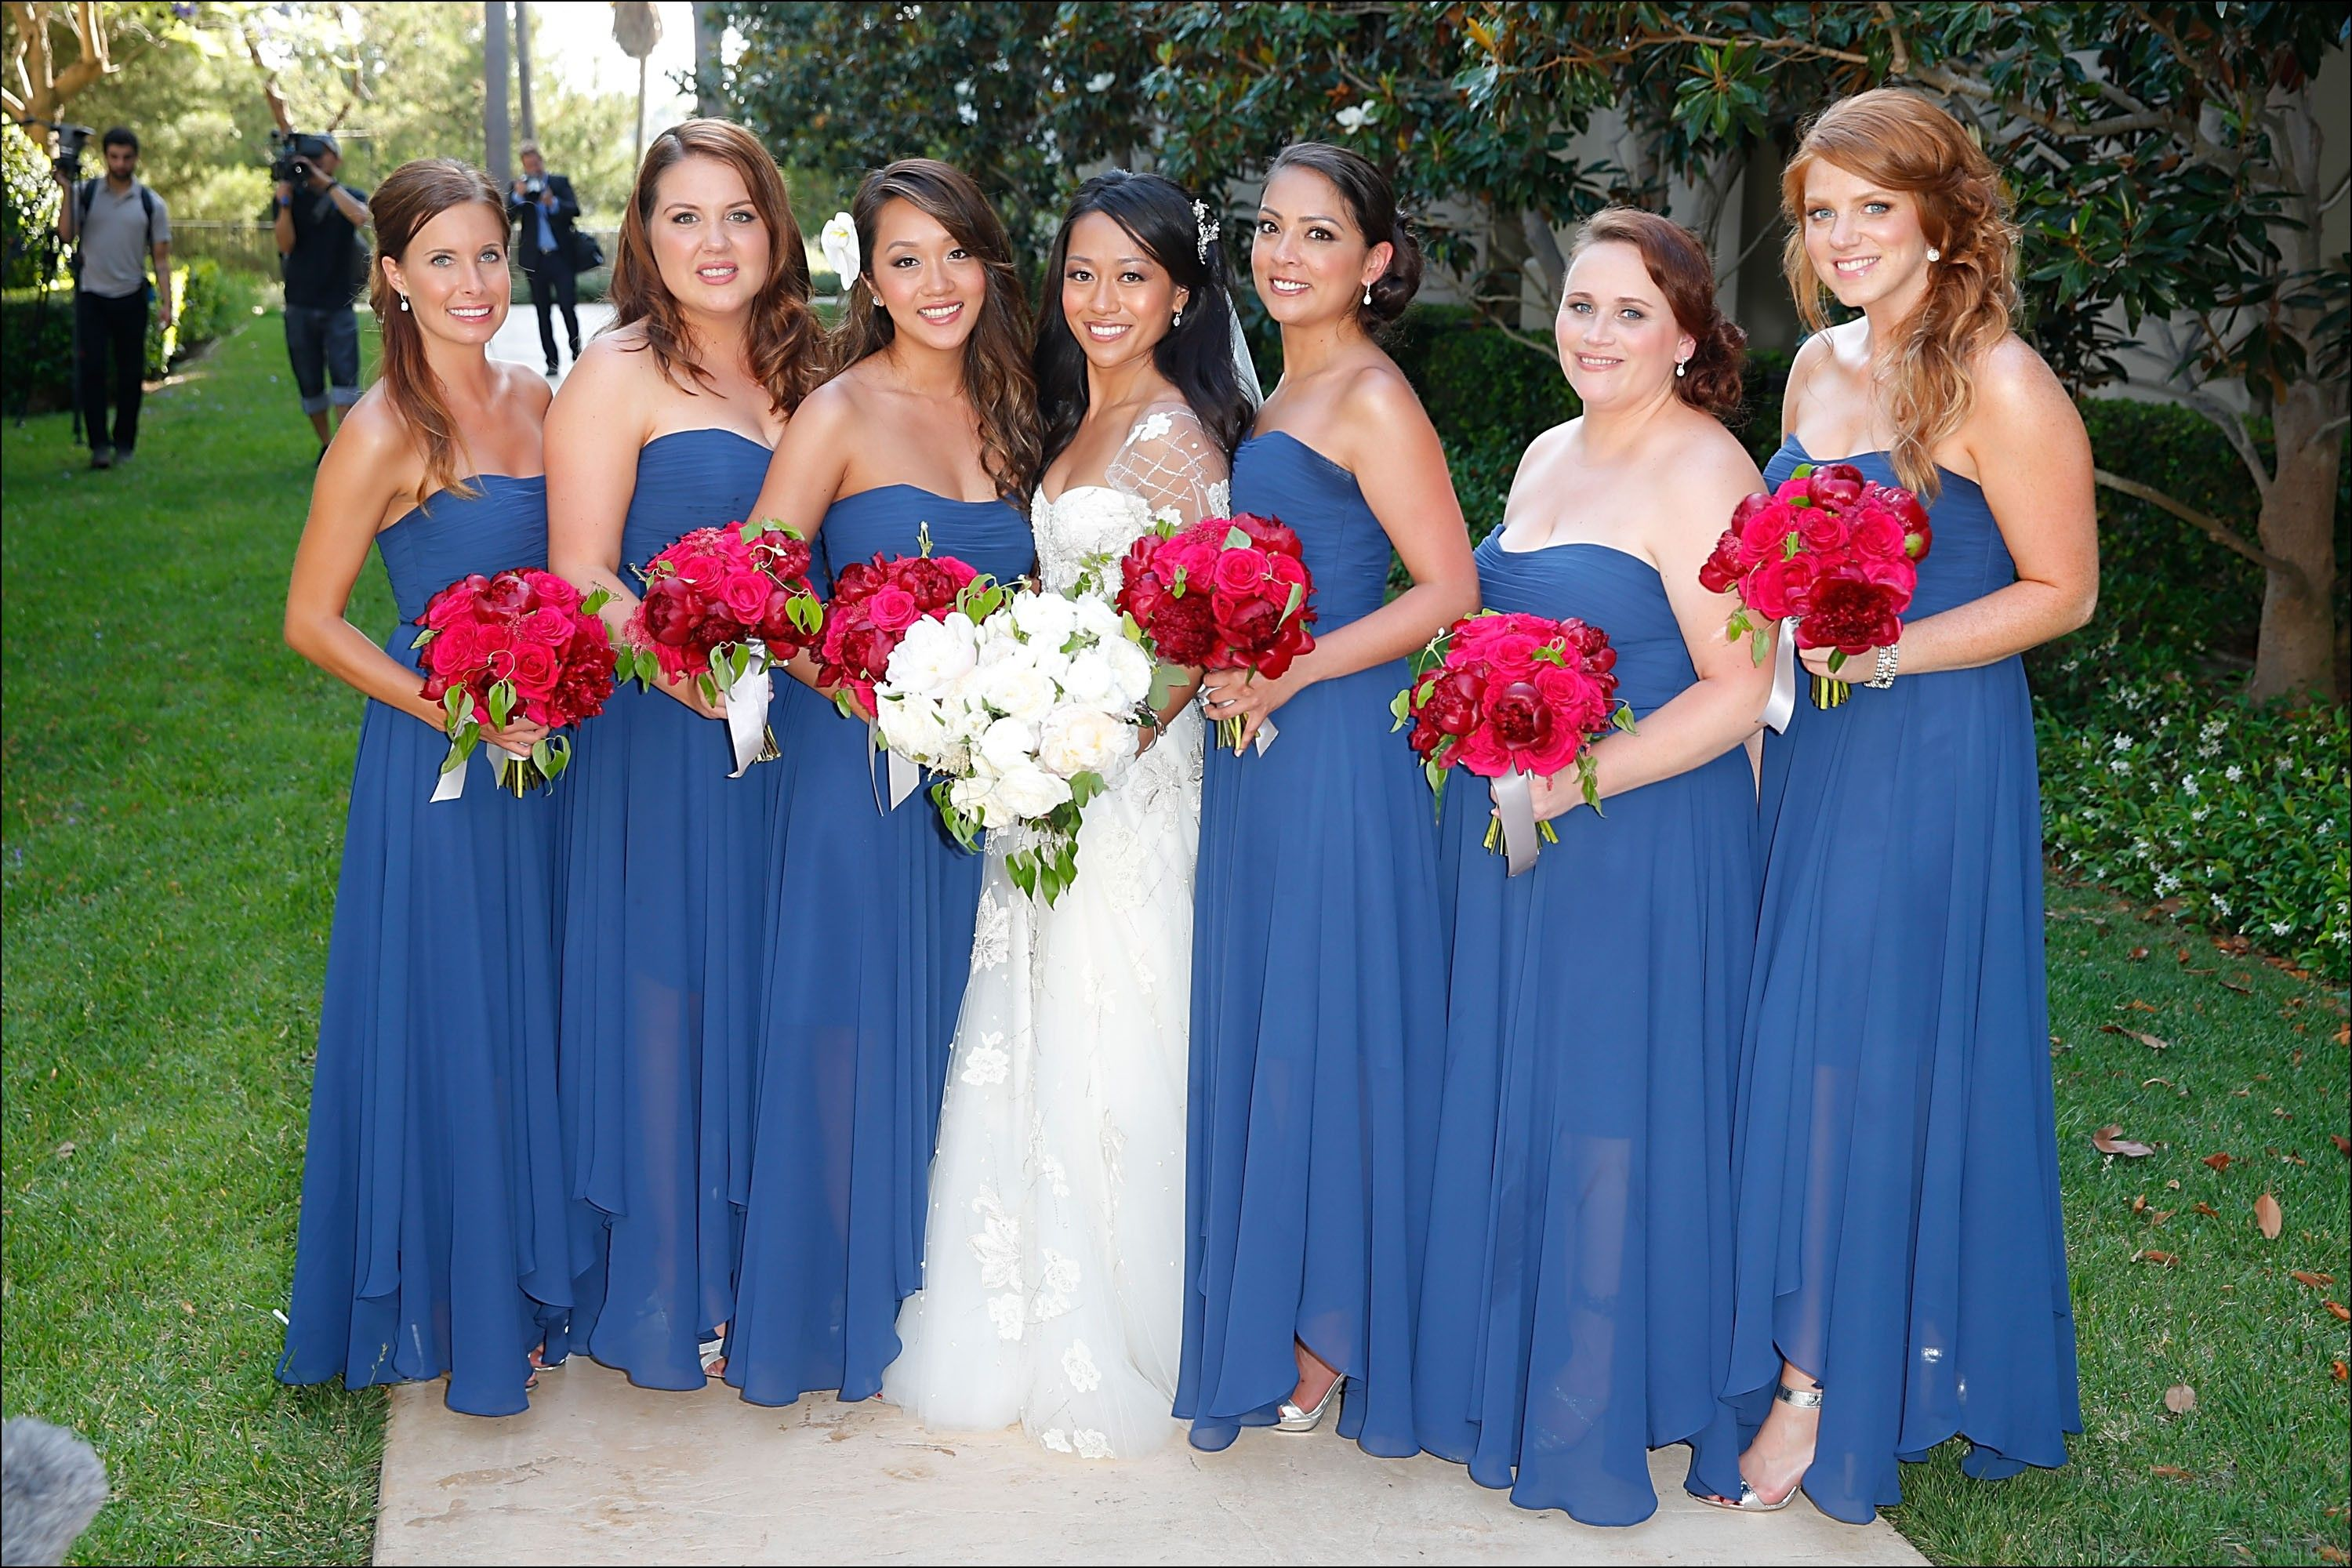 Worst ever bridesmaid dresses dresses and gowns ideas pinterest worst ever bridesmaid dresses ombrellifo Gallery